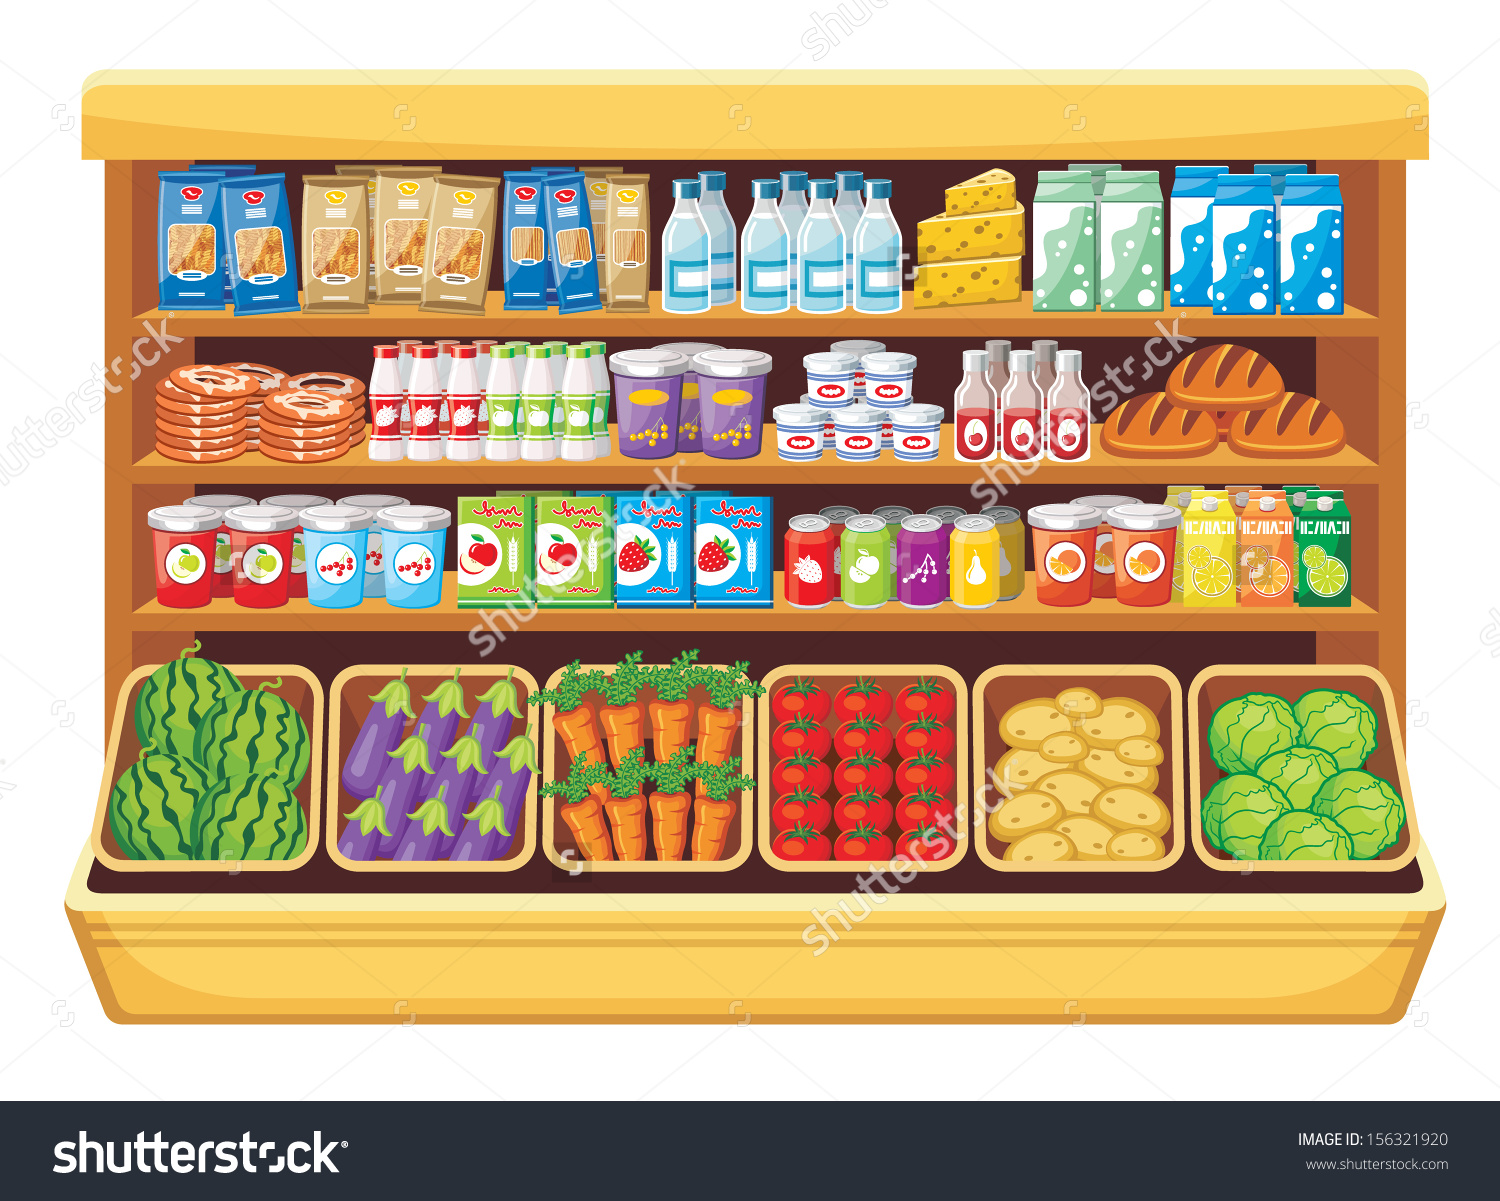 Grocery clipart images 8 » Clipart Station.